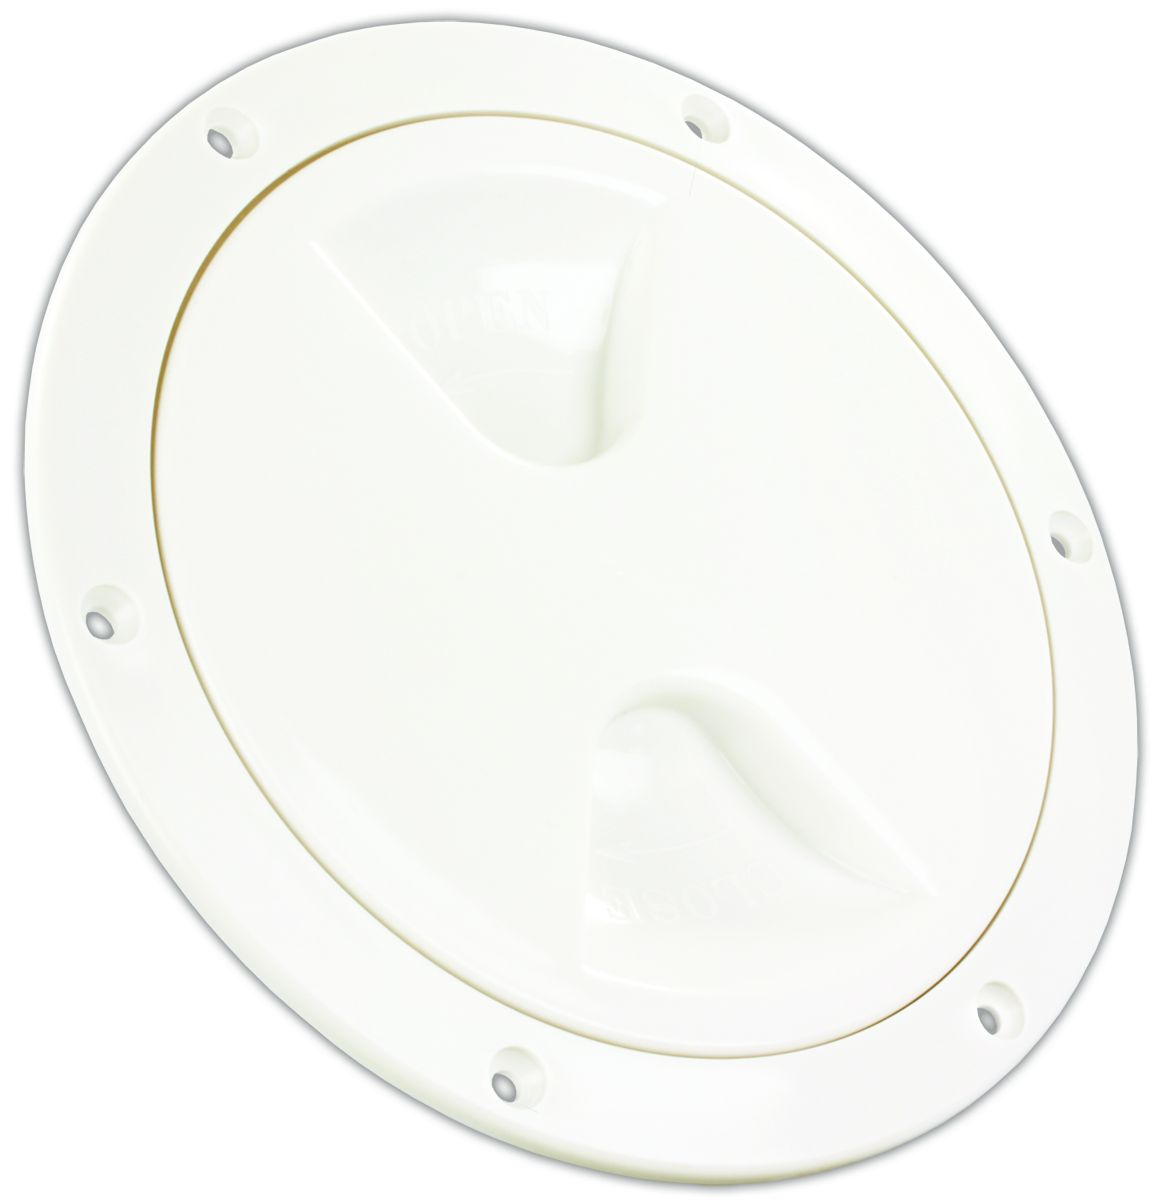 31025 JR Products Access Door 5-3/4 Inch Cutout Diameter